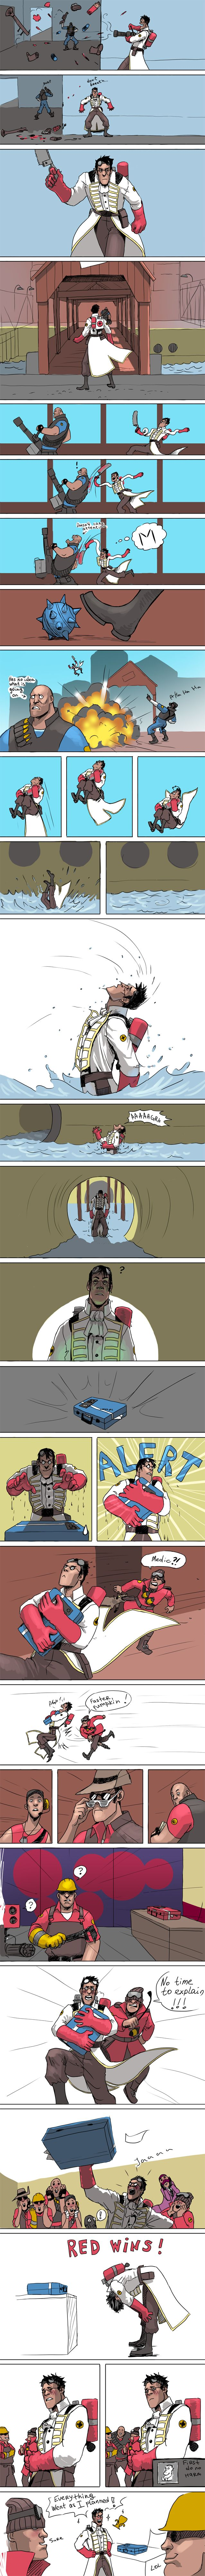 Do-no-harm by Arvense (Pretty accurately describes me playing medic, except I die two feet from our base and someone else claims the victory)